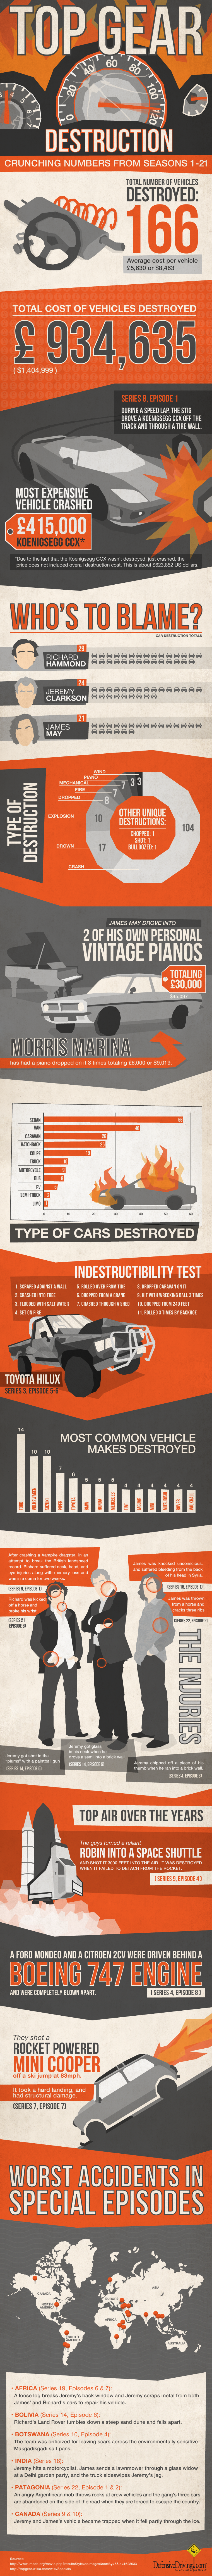 Top Gear Destruction Infographic